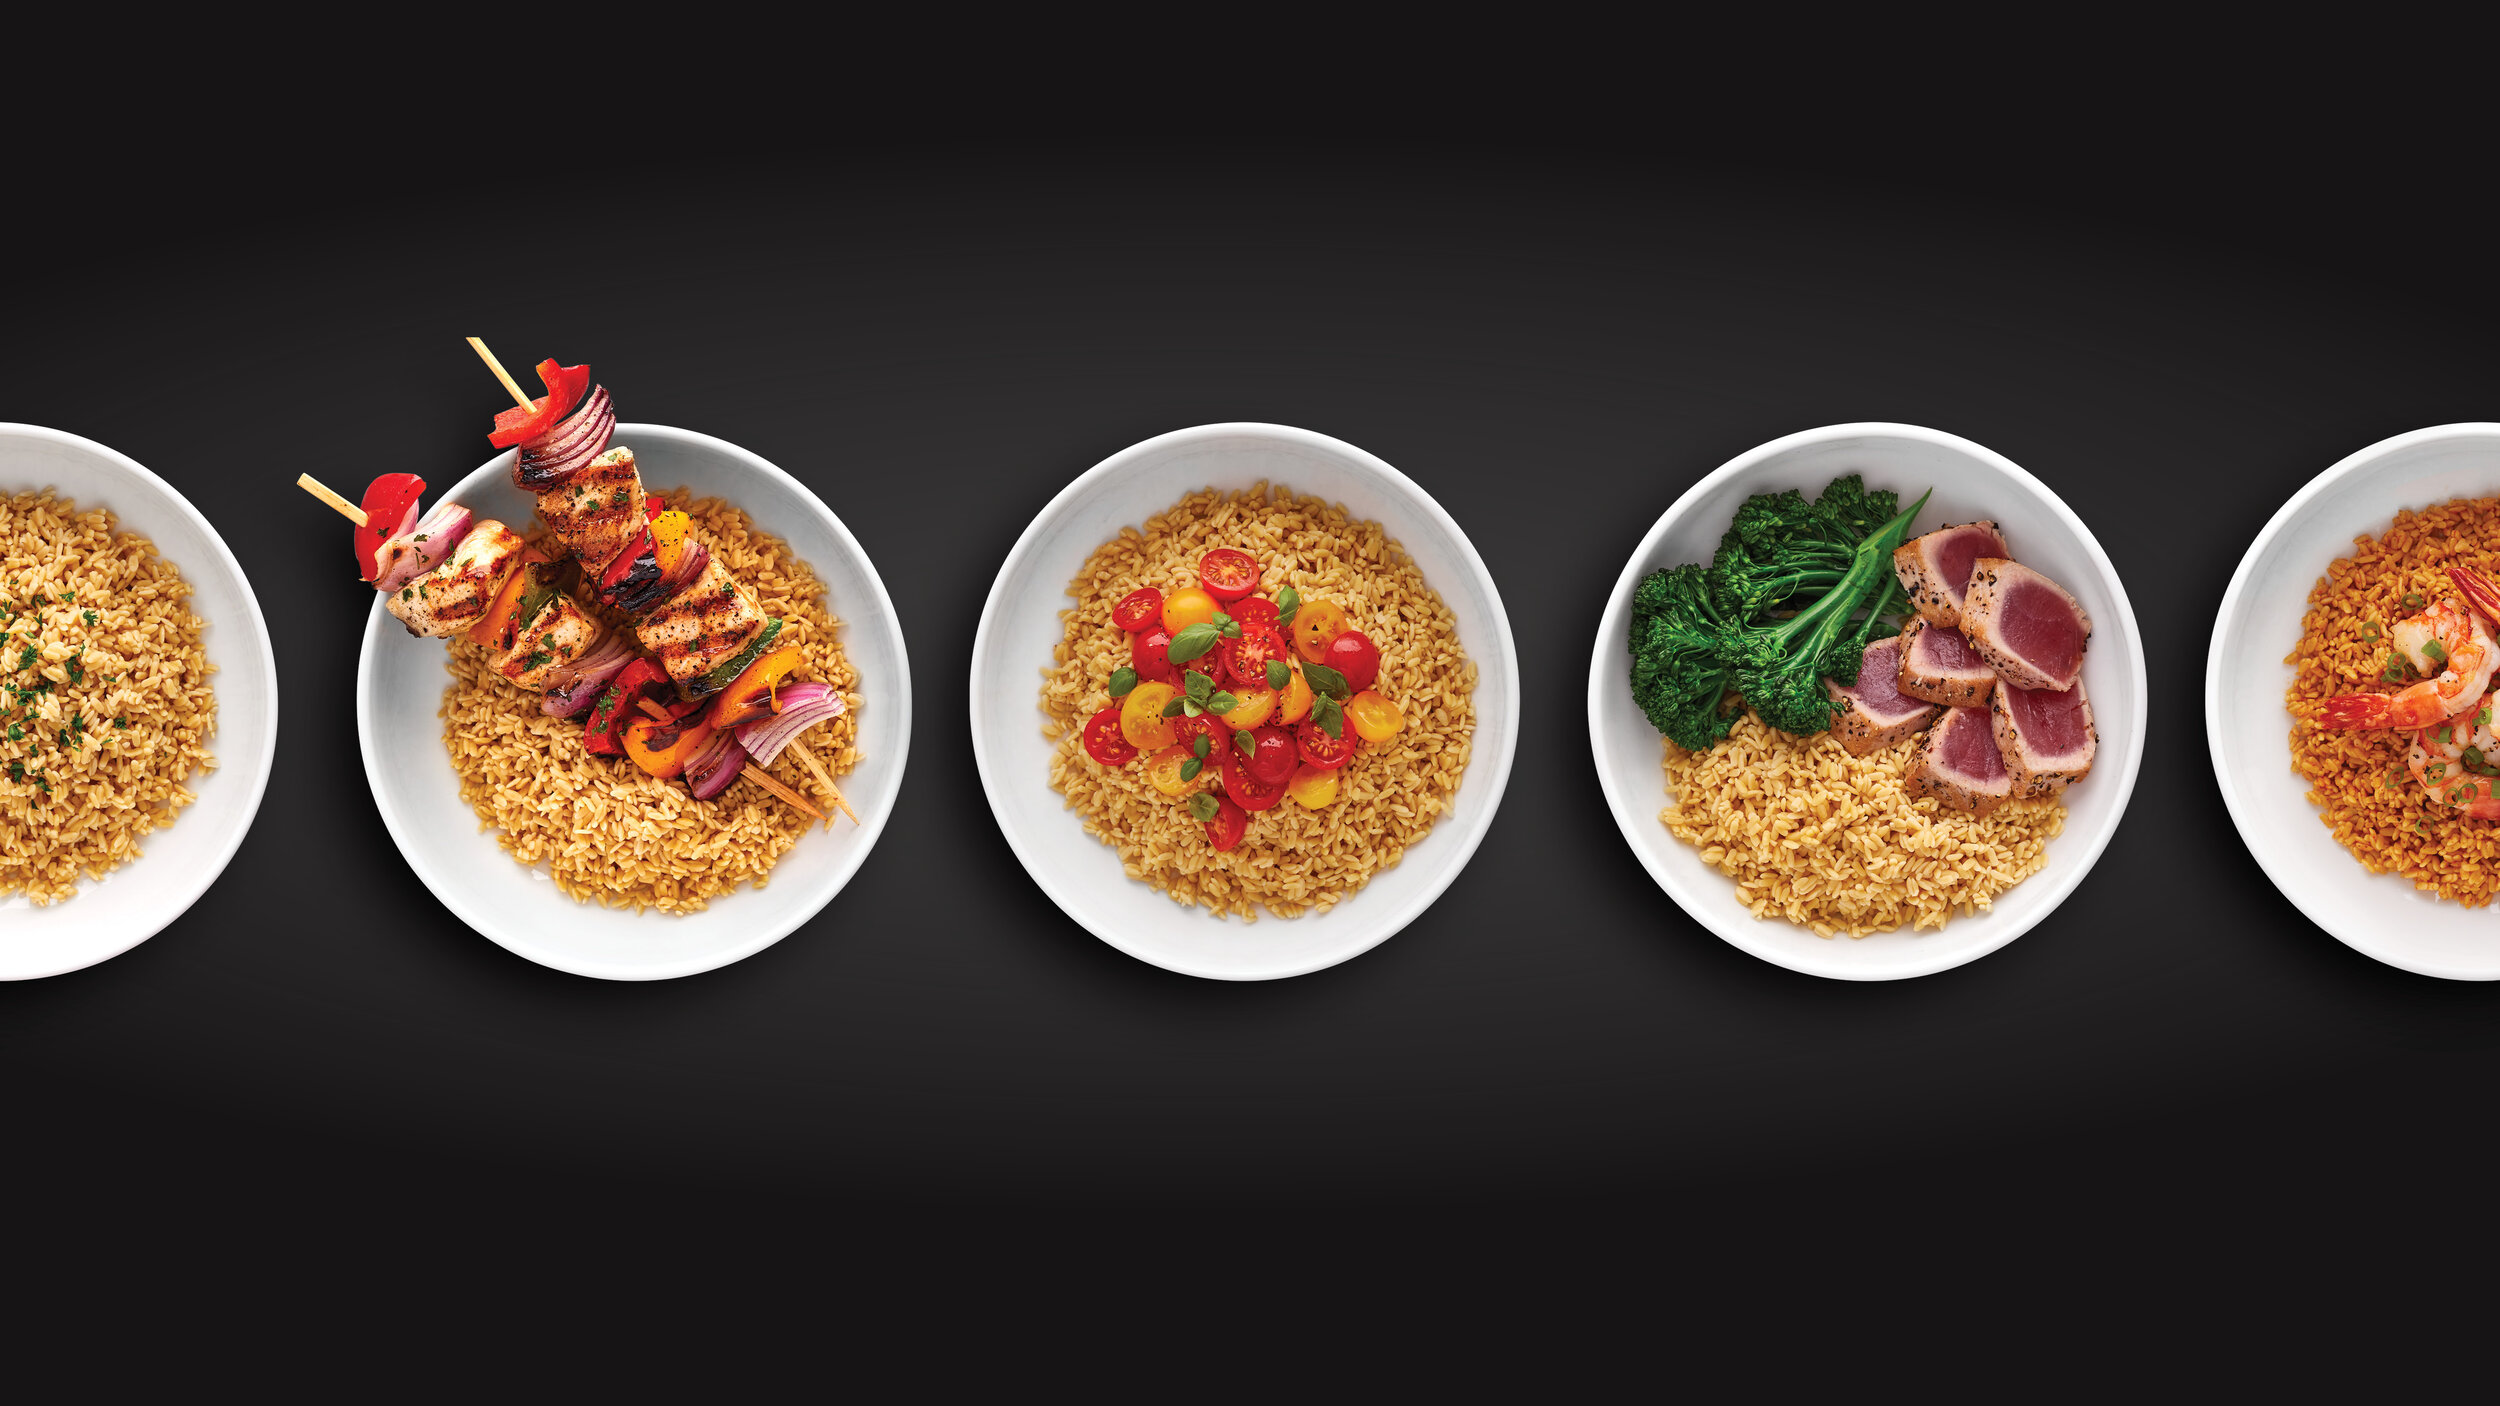 RightRice has more than double the protein, five times the fiber, and 40% fewer net carbs than traditional rice. But the product still tastes and looks like rice, and is faster and easier to cook. The photography we captured celebrates the variety of ways that it can be enjoyed.